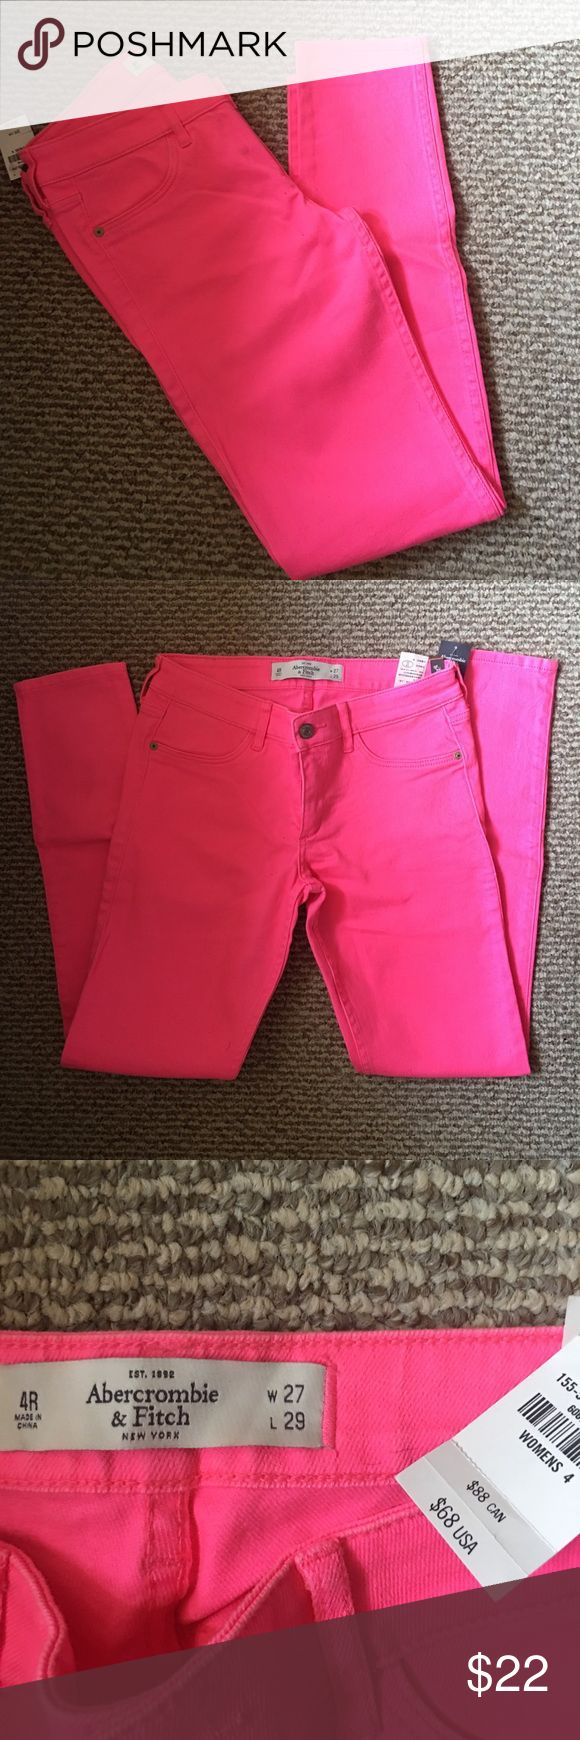 Hot pink  Abercrombie jeans Hot pink Abercrombie jeans. W- 27 L- 29 Jeans have a little stretch to them. NWT Abercrombie & Fitch Jeans Skinny